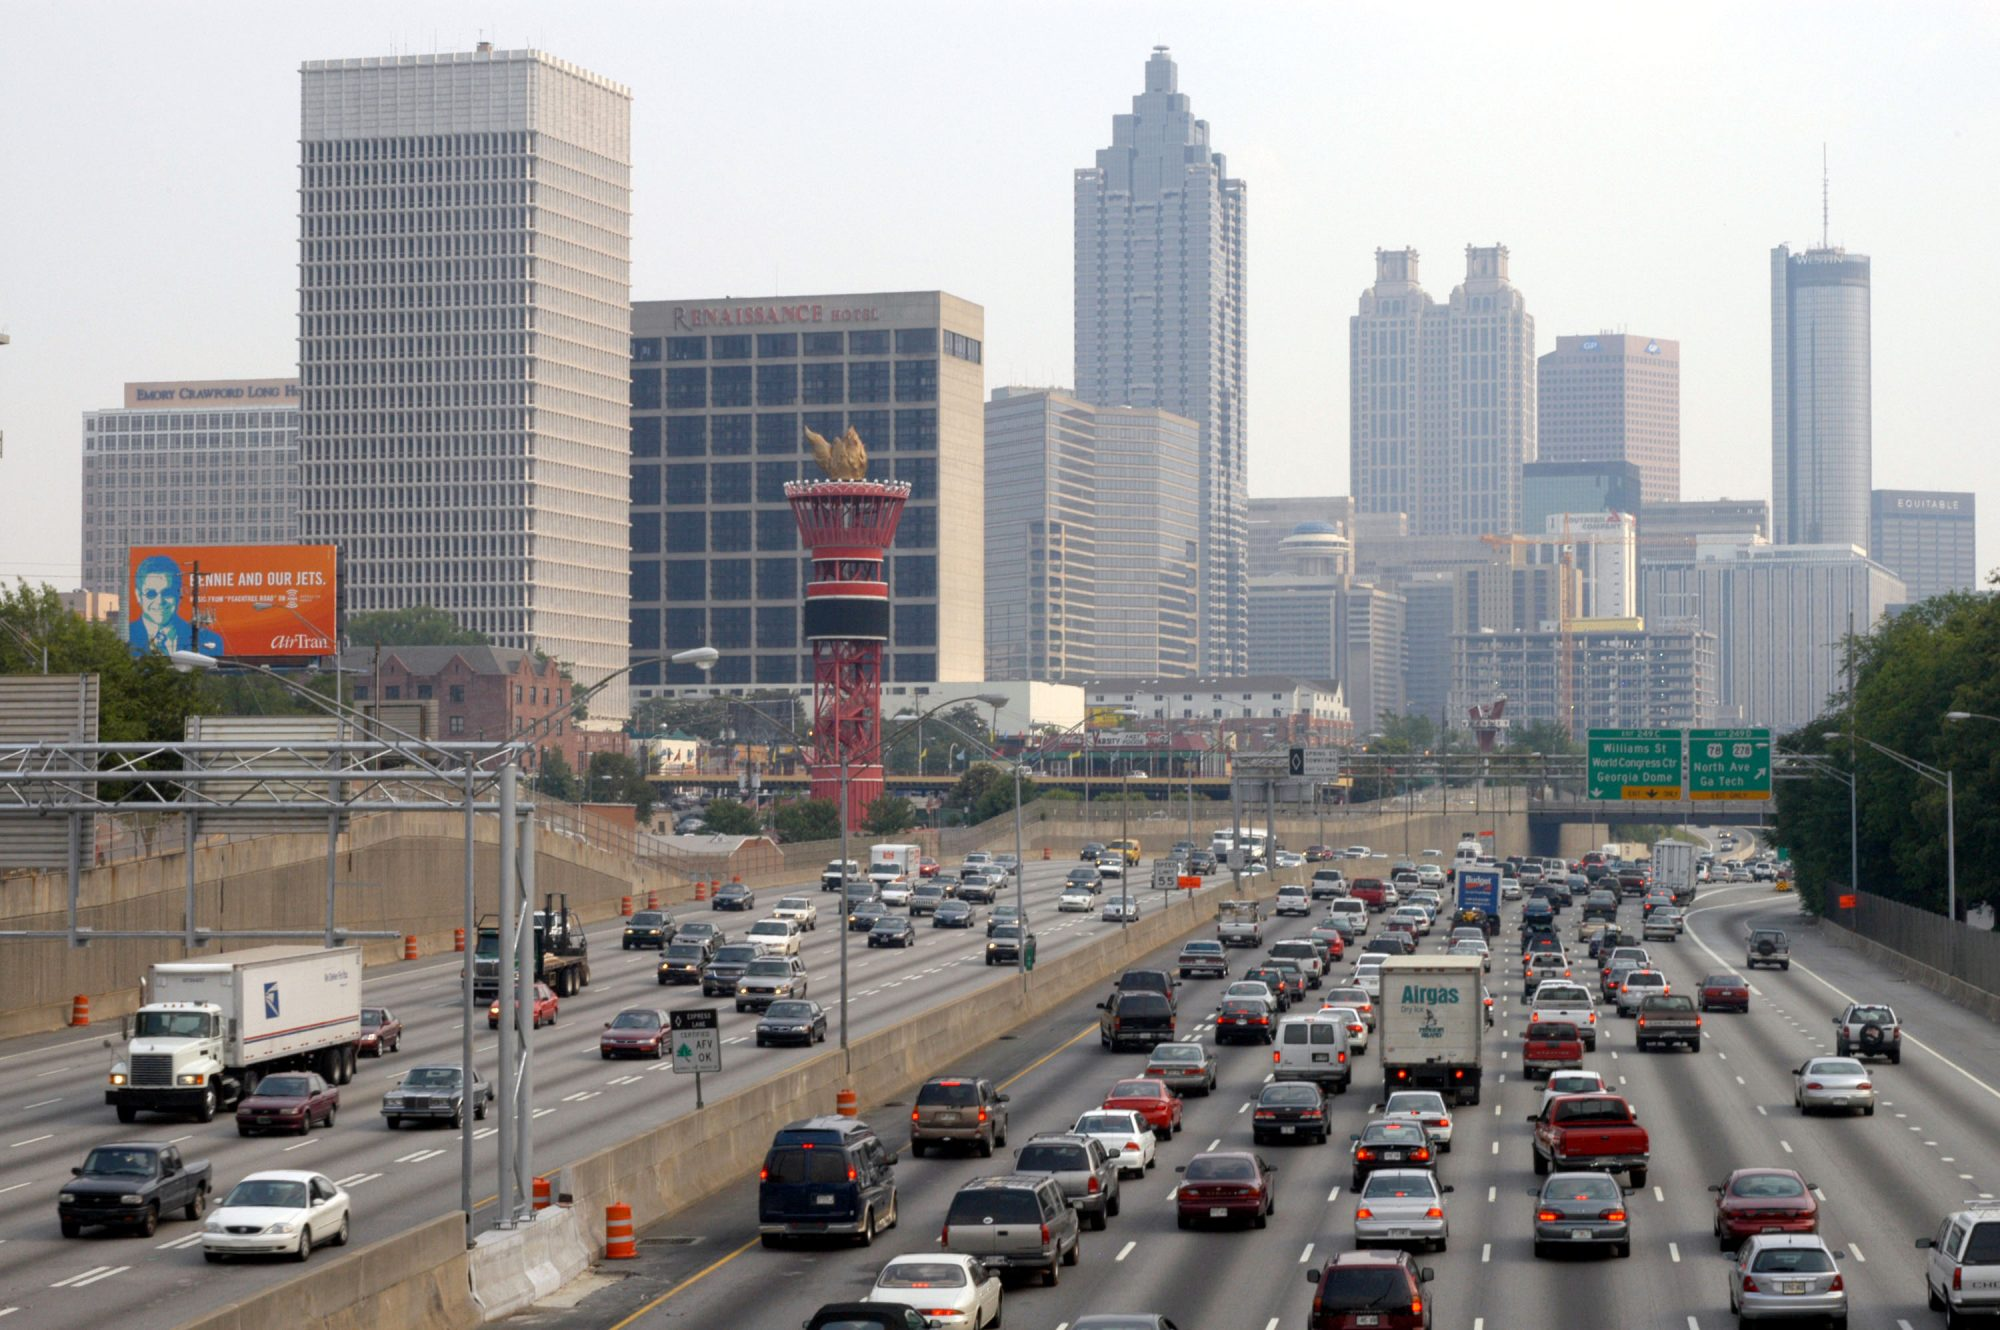 Atlanta Losing Traffic Gridlock Battle, Study Reports